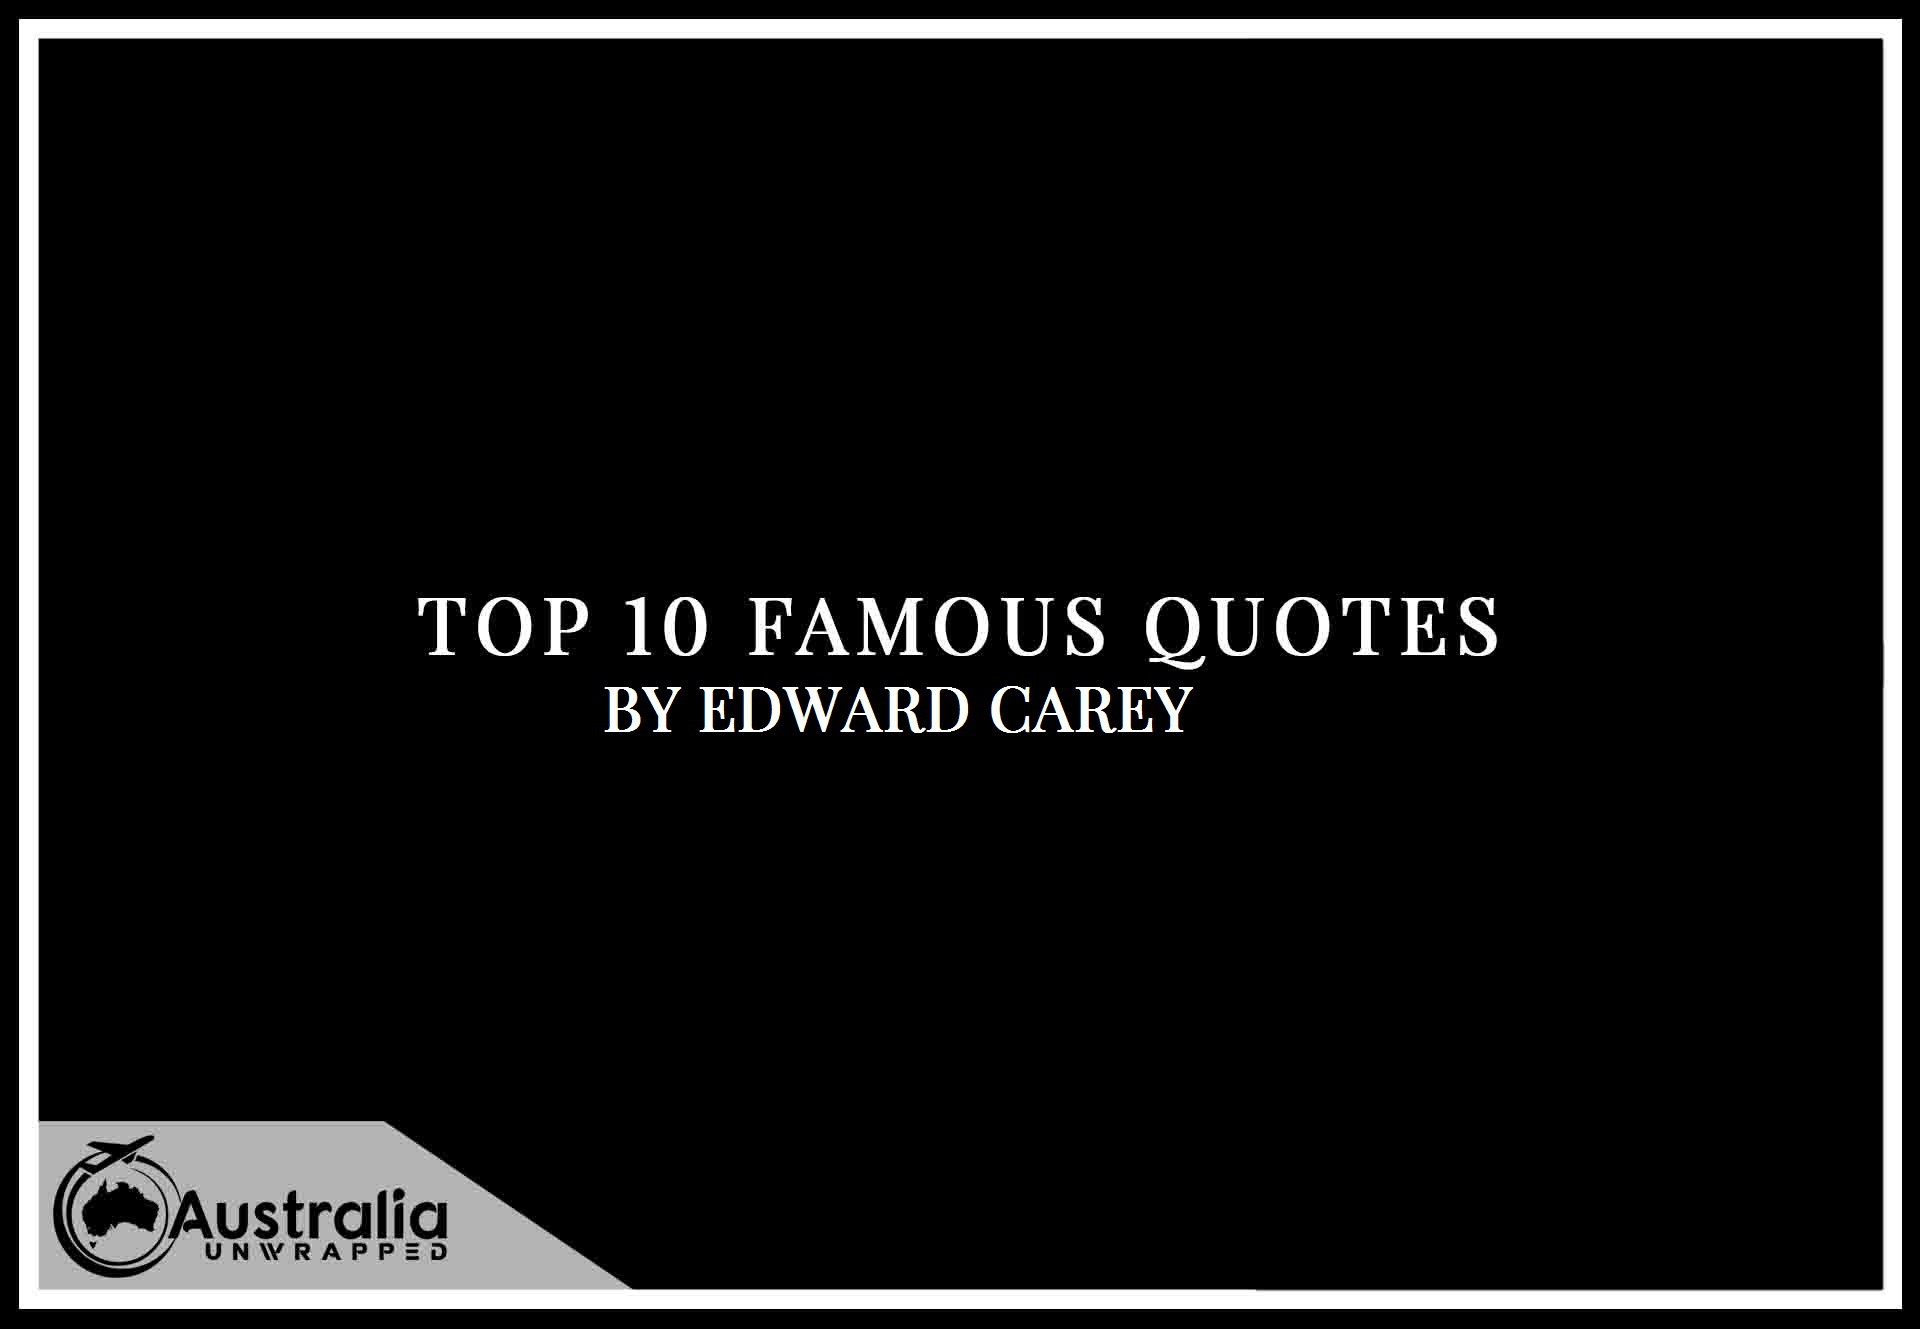 Edward Carey's Top 10 Popular and Famous Quotes